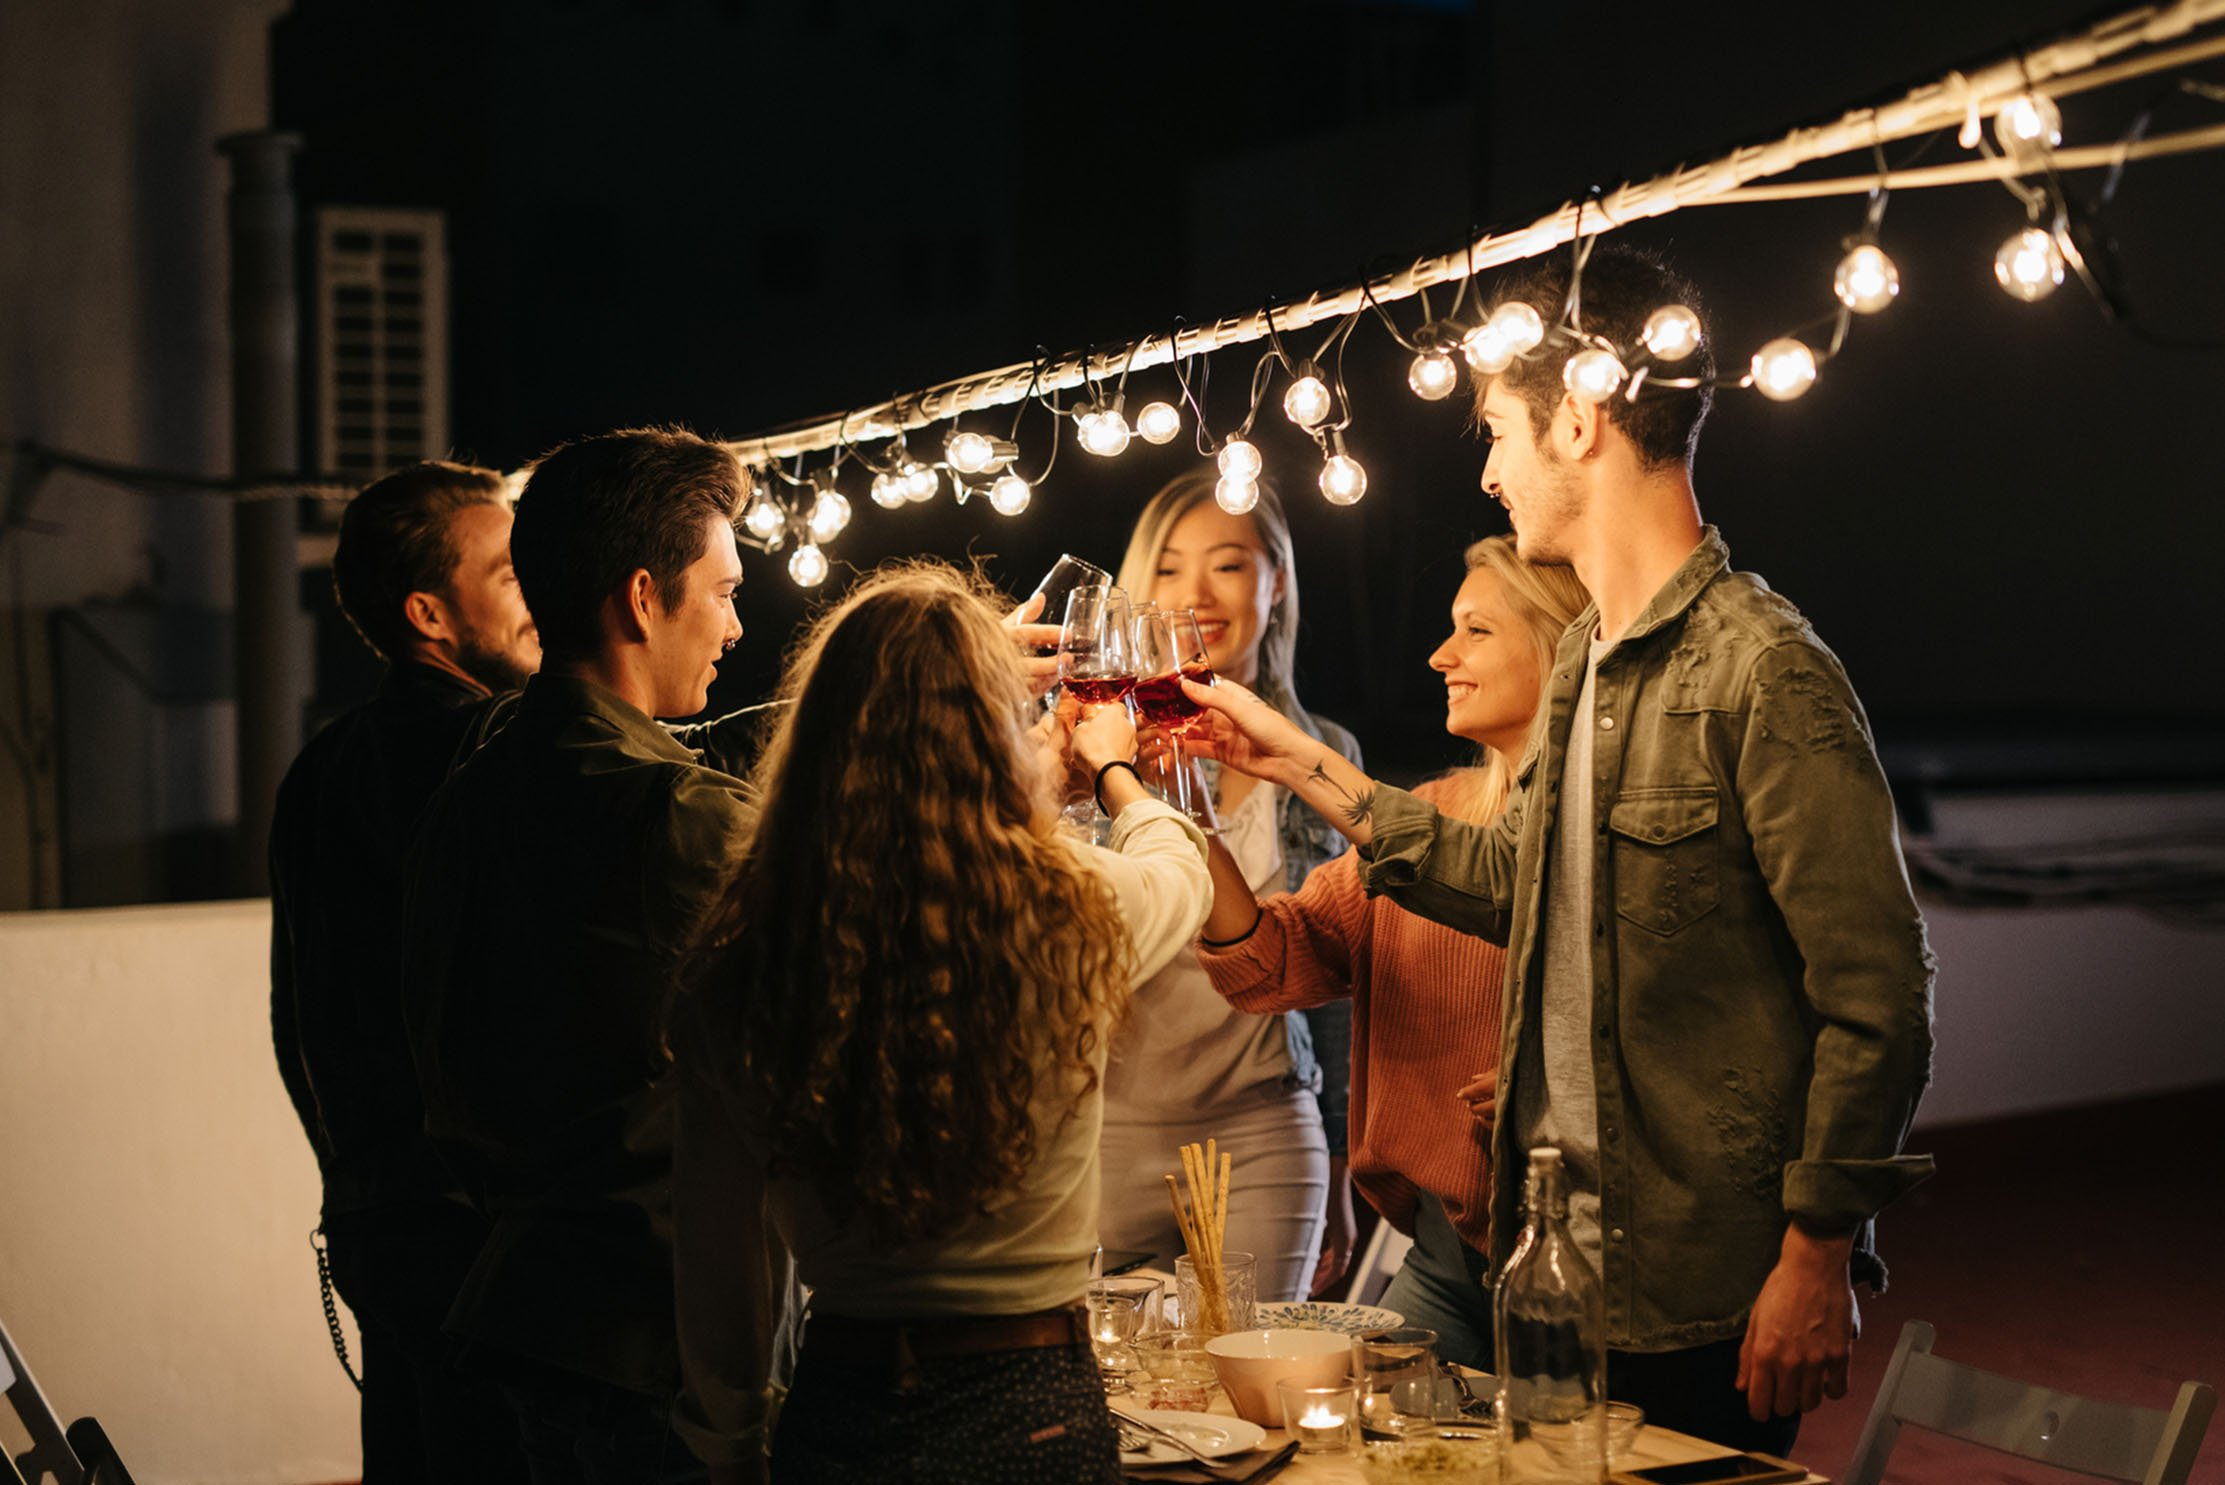 Give A Dinner Party, a new social way to make fundraising fun is being launched in Brighton this April